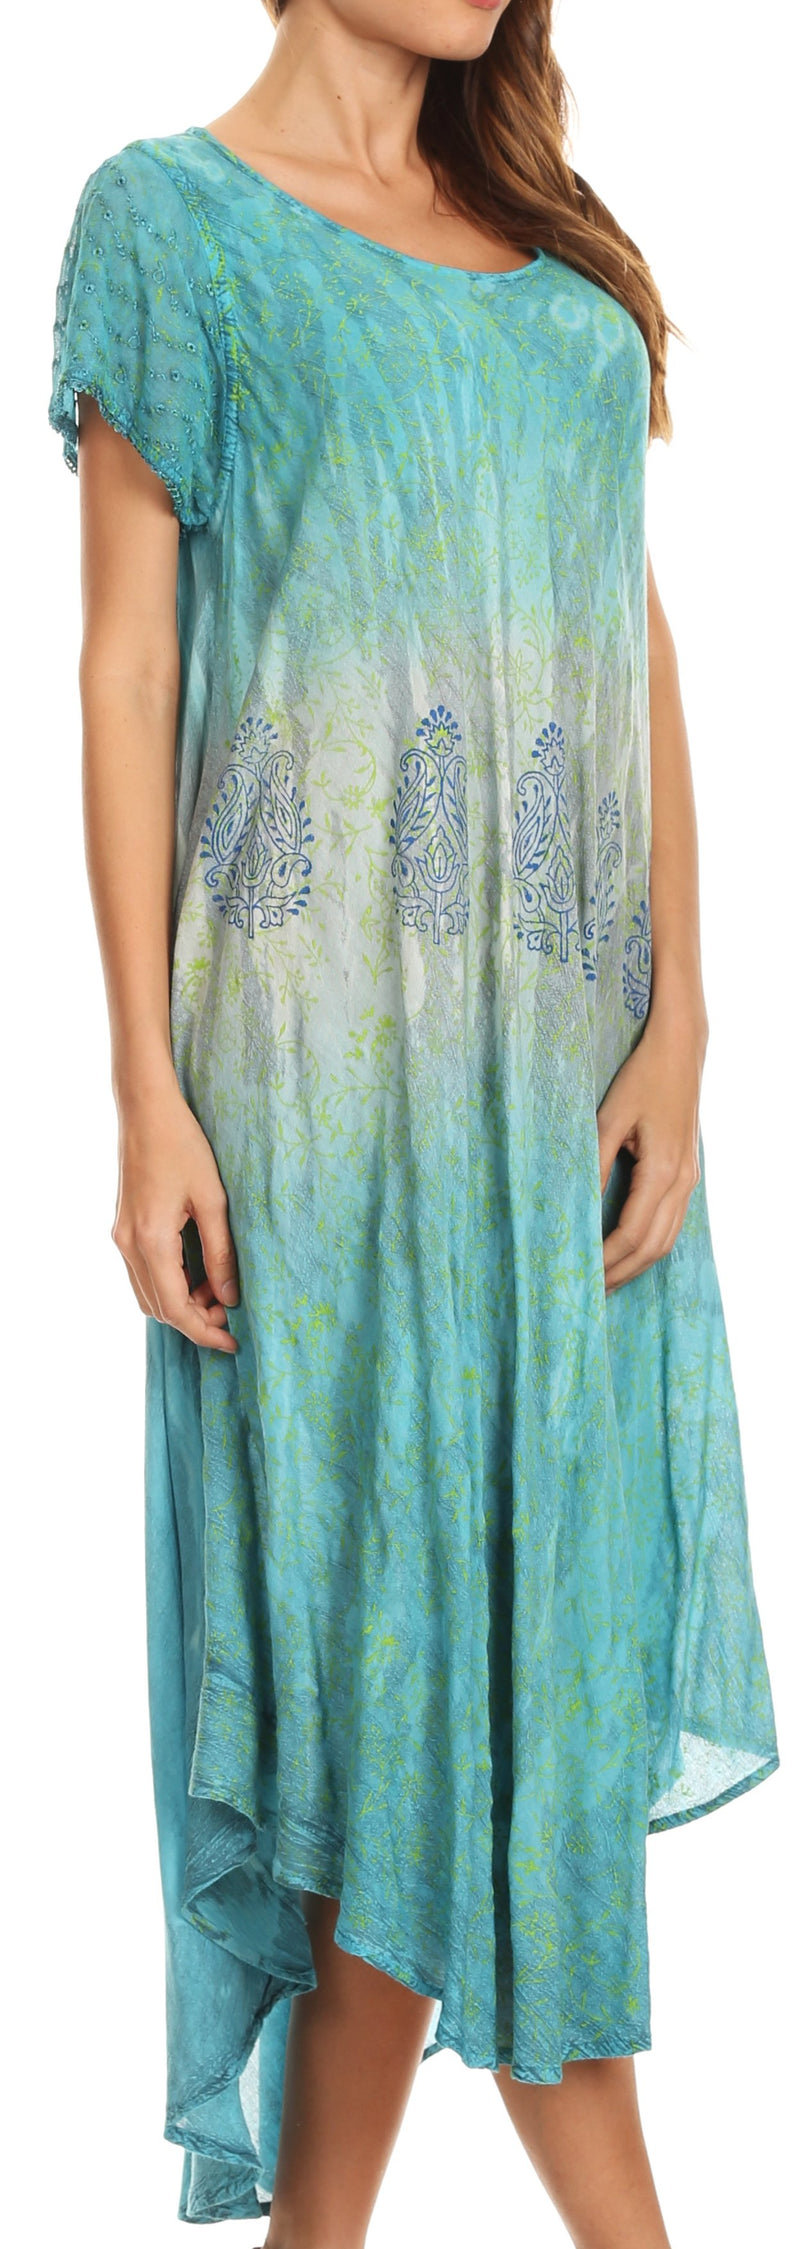 Sakkas Samira Color Block Printed Sheer Cap Sleeve Relaxed Fit Dress | Cover Up